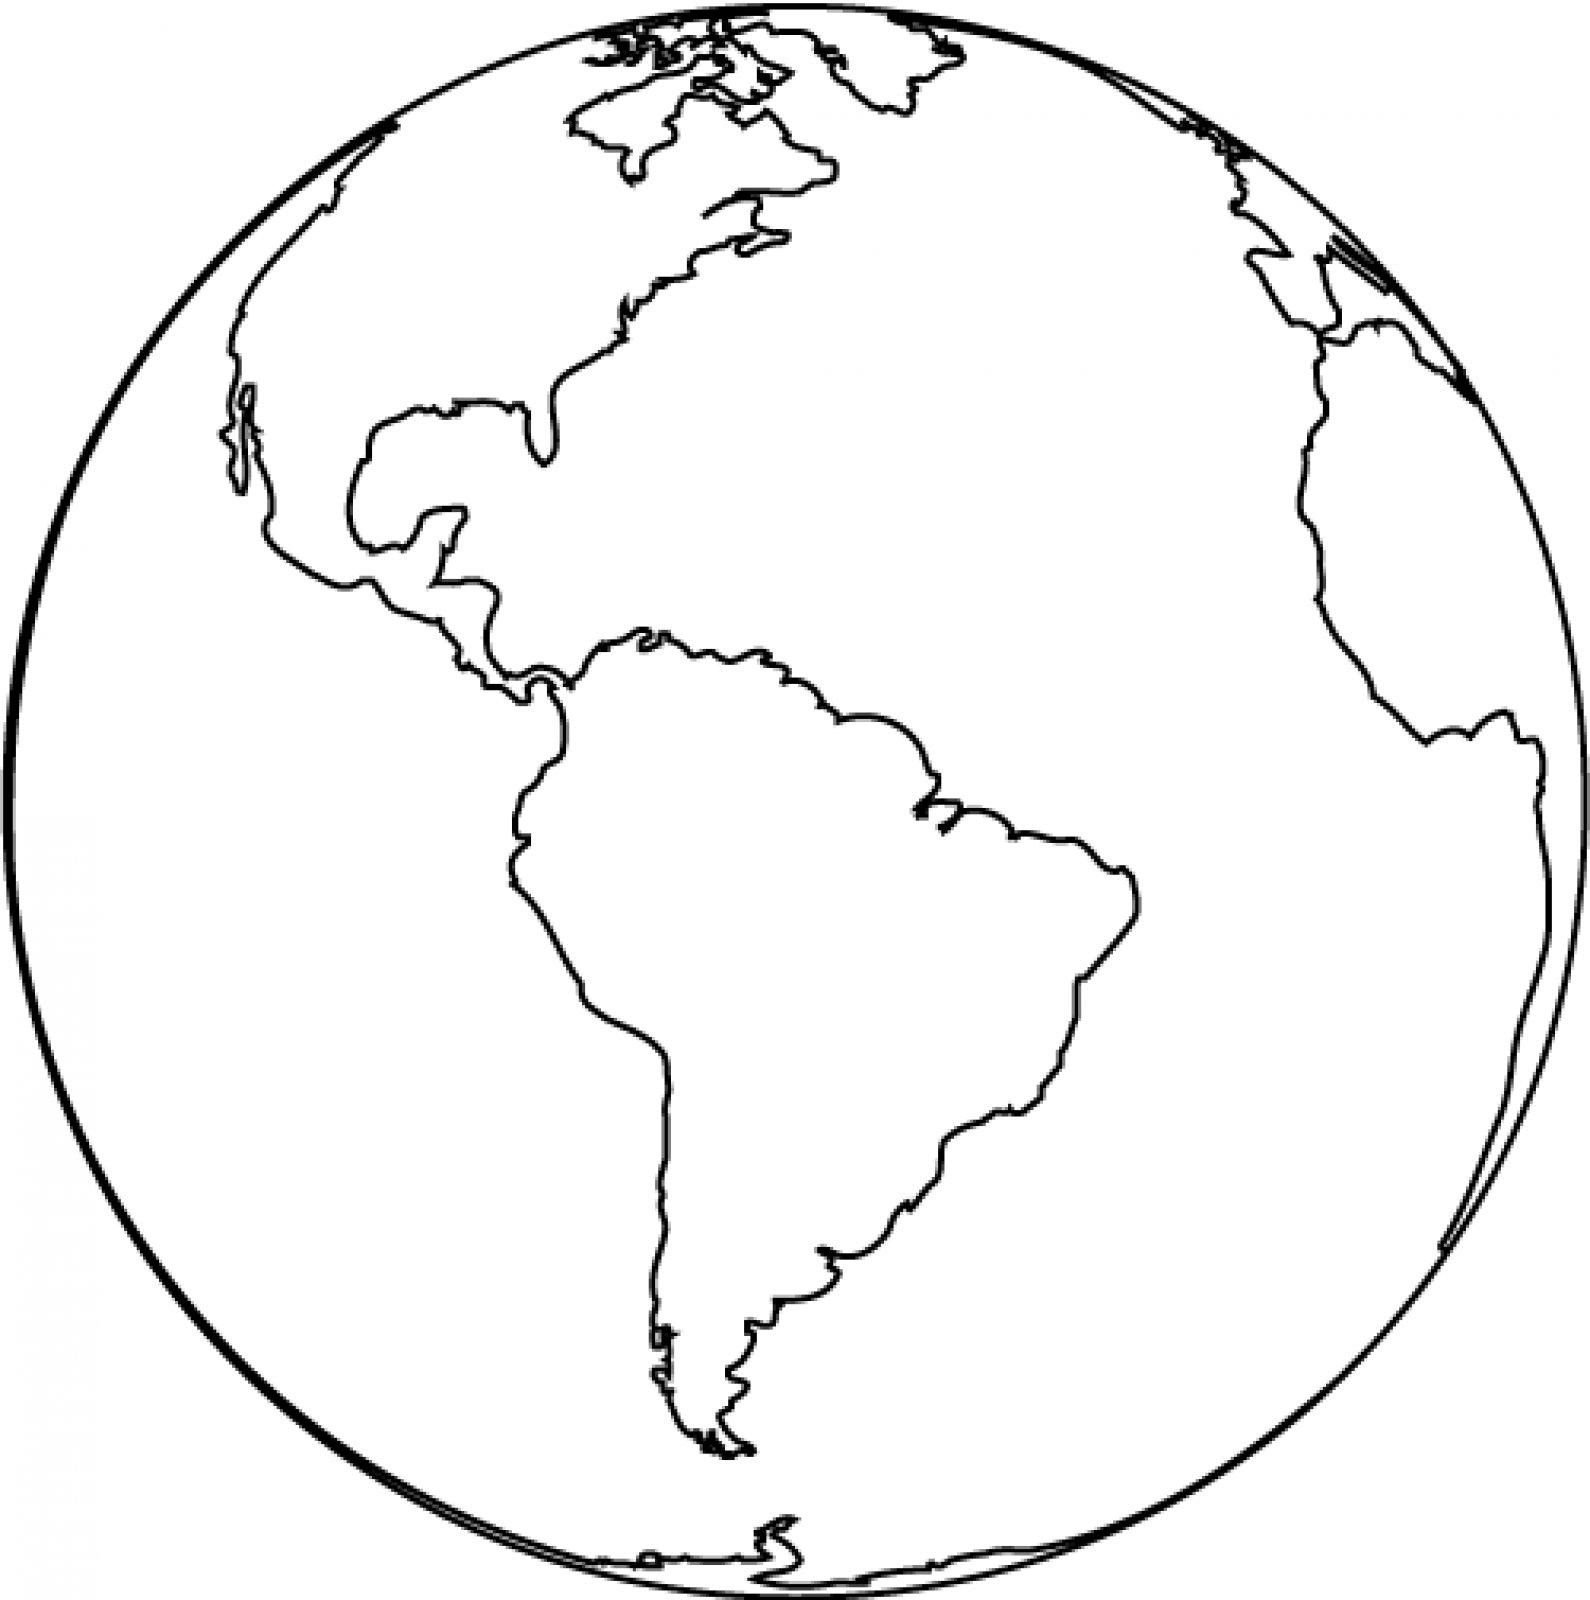 coloring pictures of earth free printable earth coloring pages for kids pictures earth of coloring